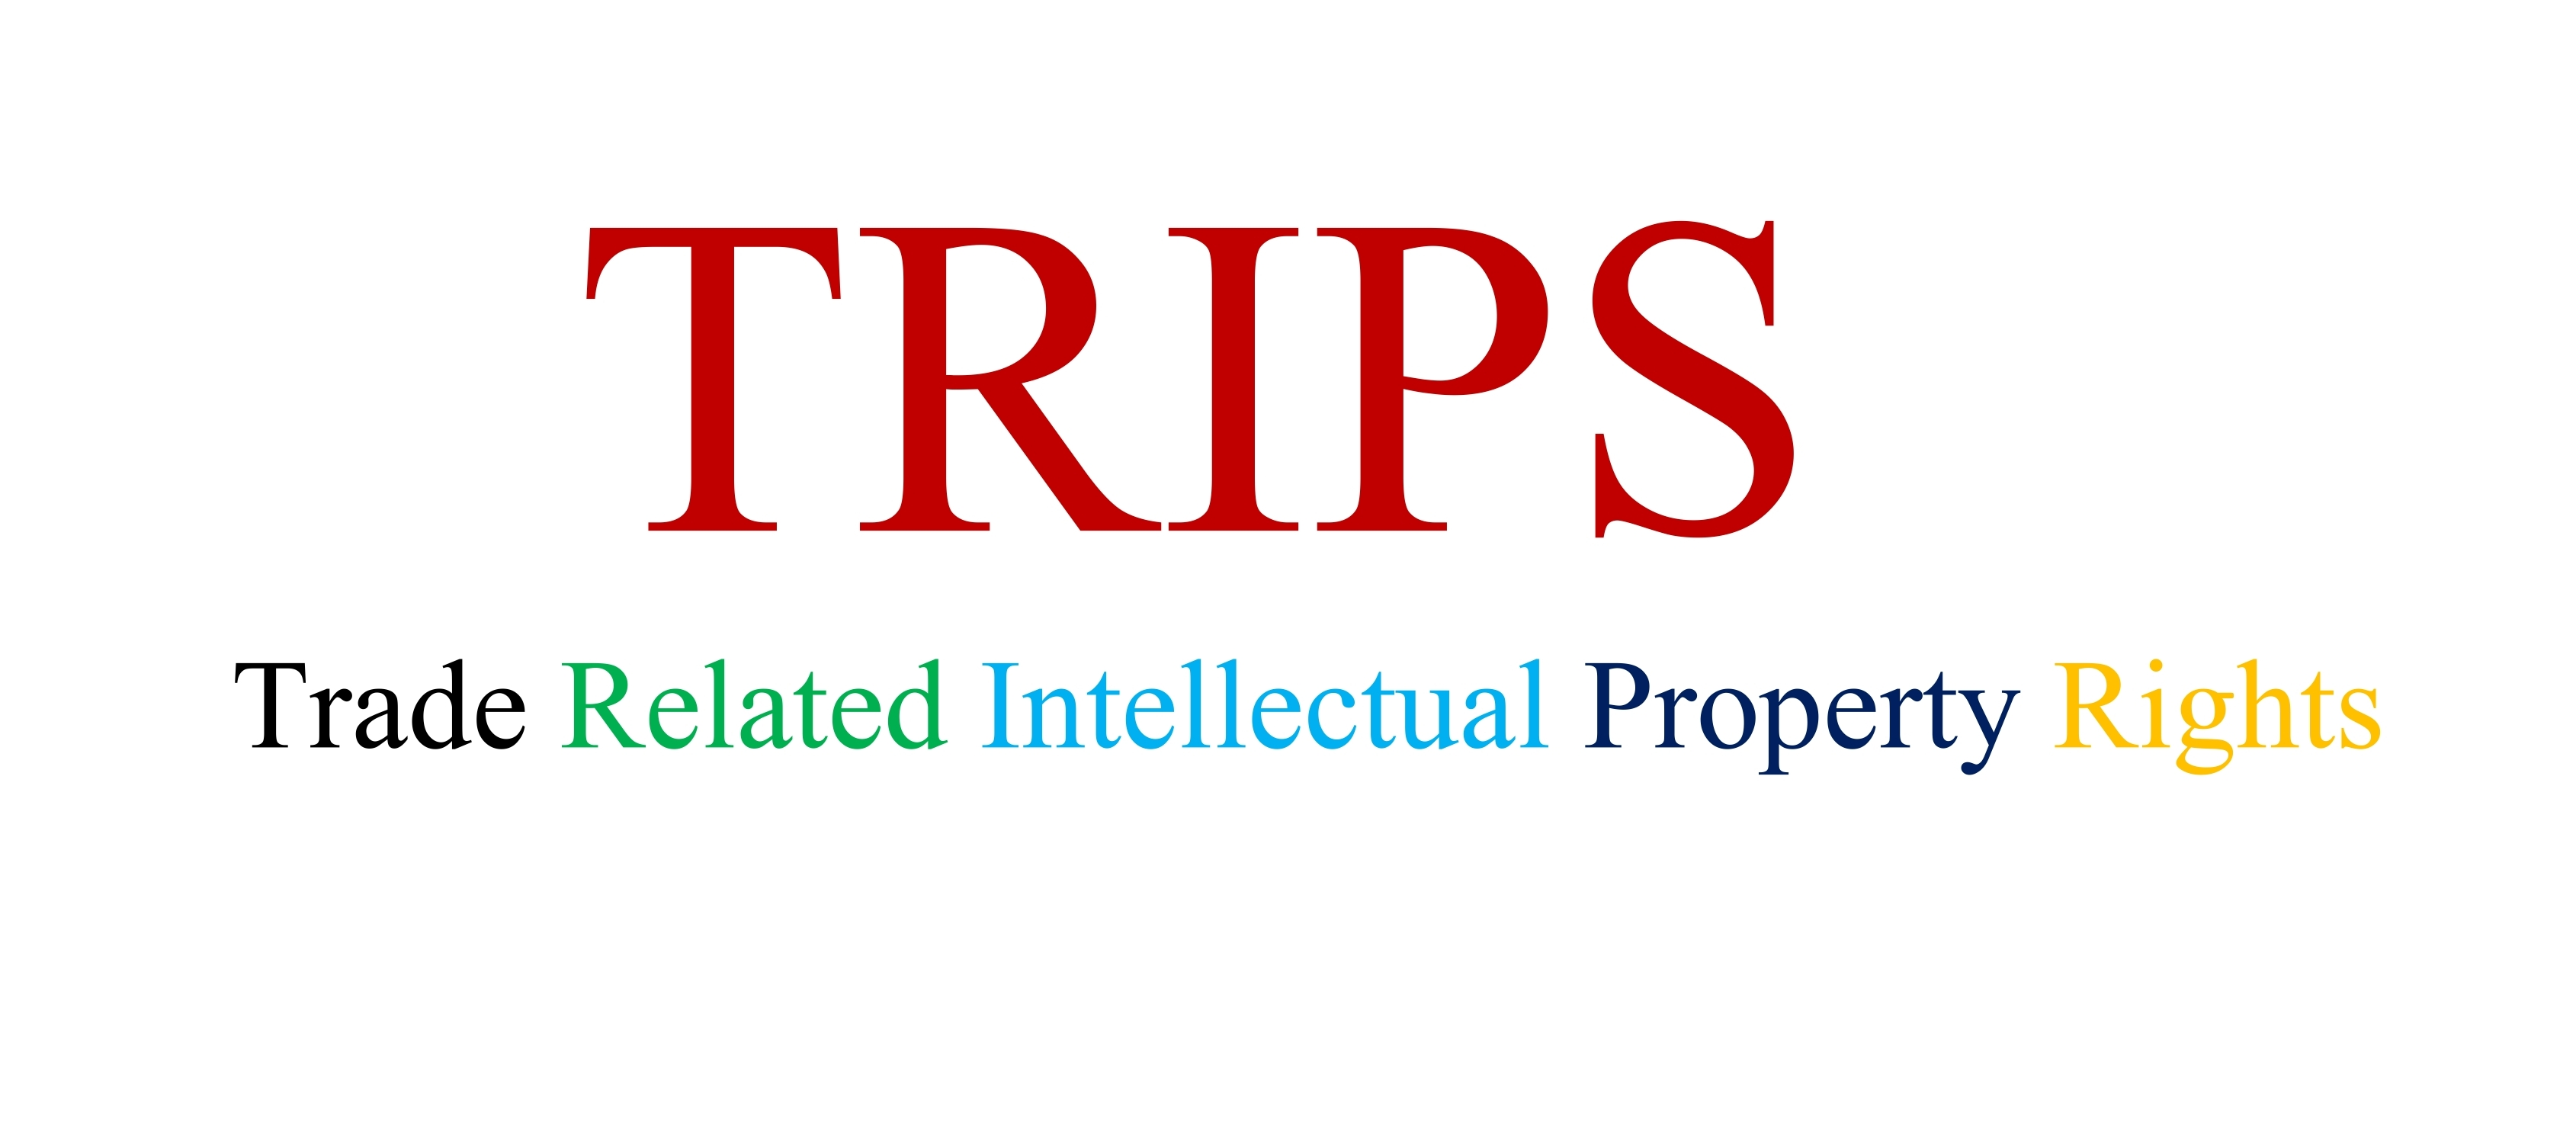 Top Ten changes the agreement on TRIPS brought to the IPR regime